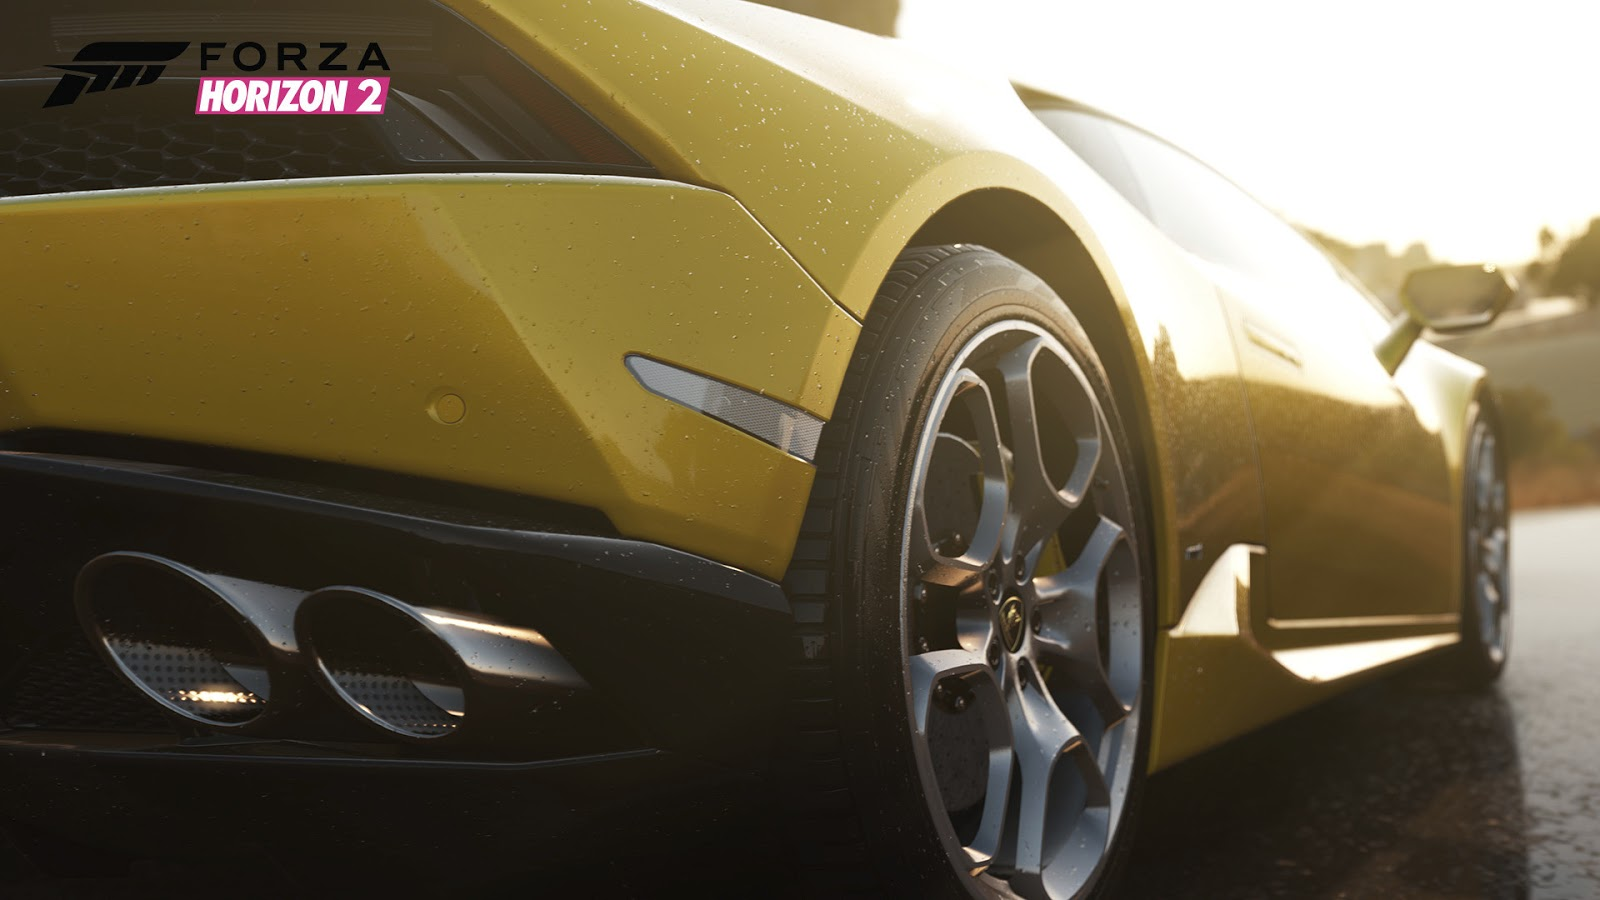 Forza Horizon 2 sai no final de 2014 para Xbox One e Xbox 360 Forza+Horizon+2+-+02